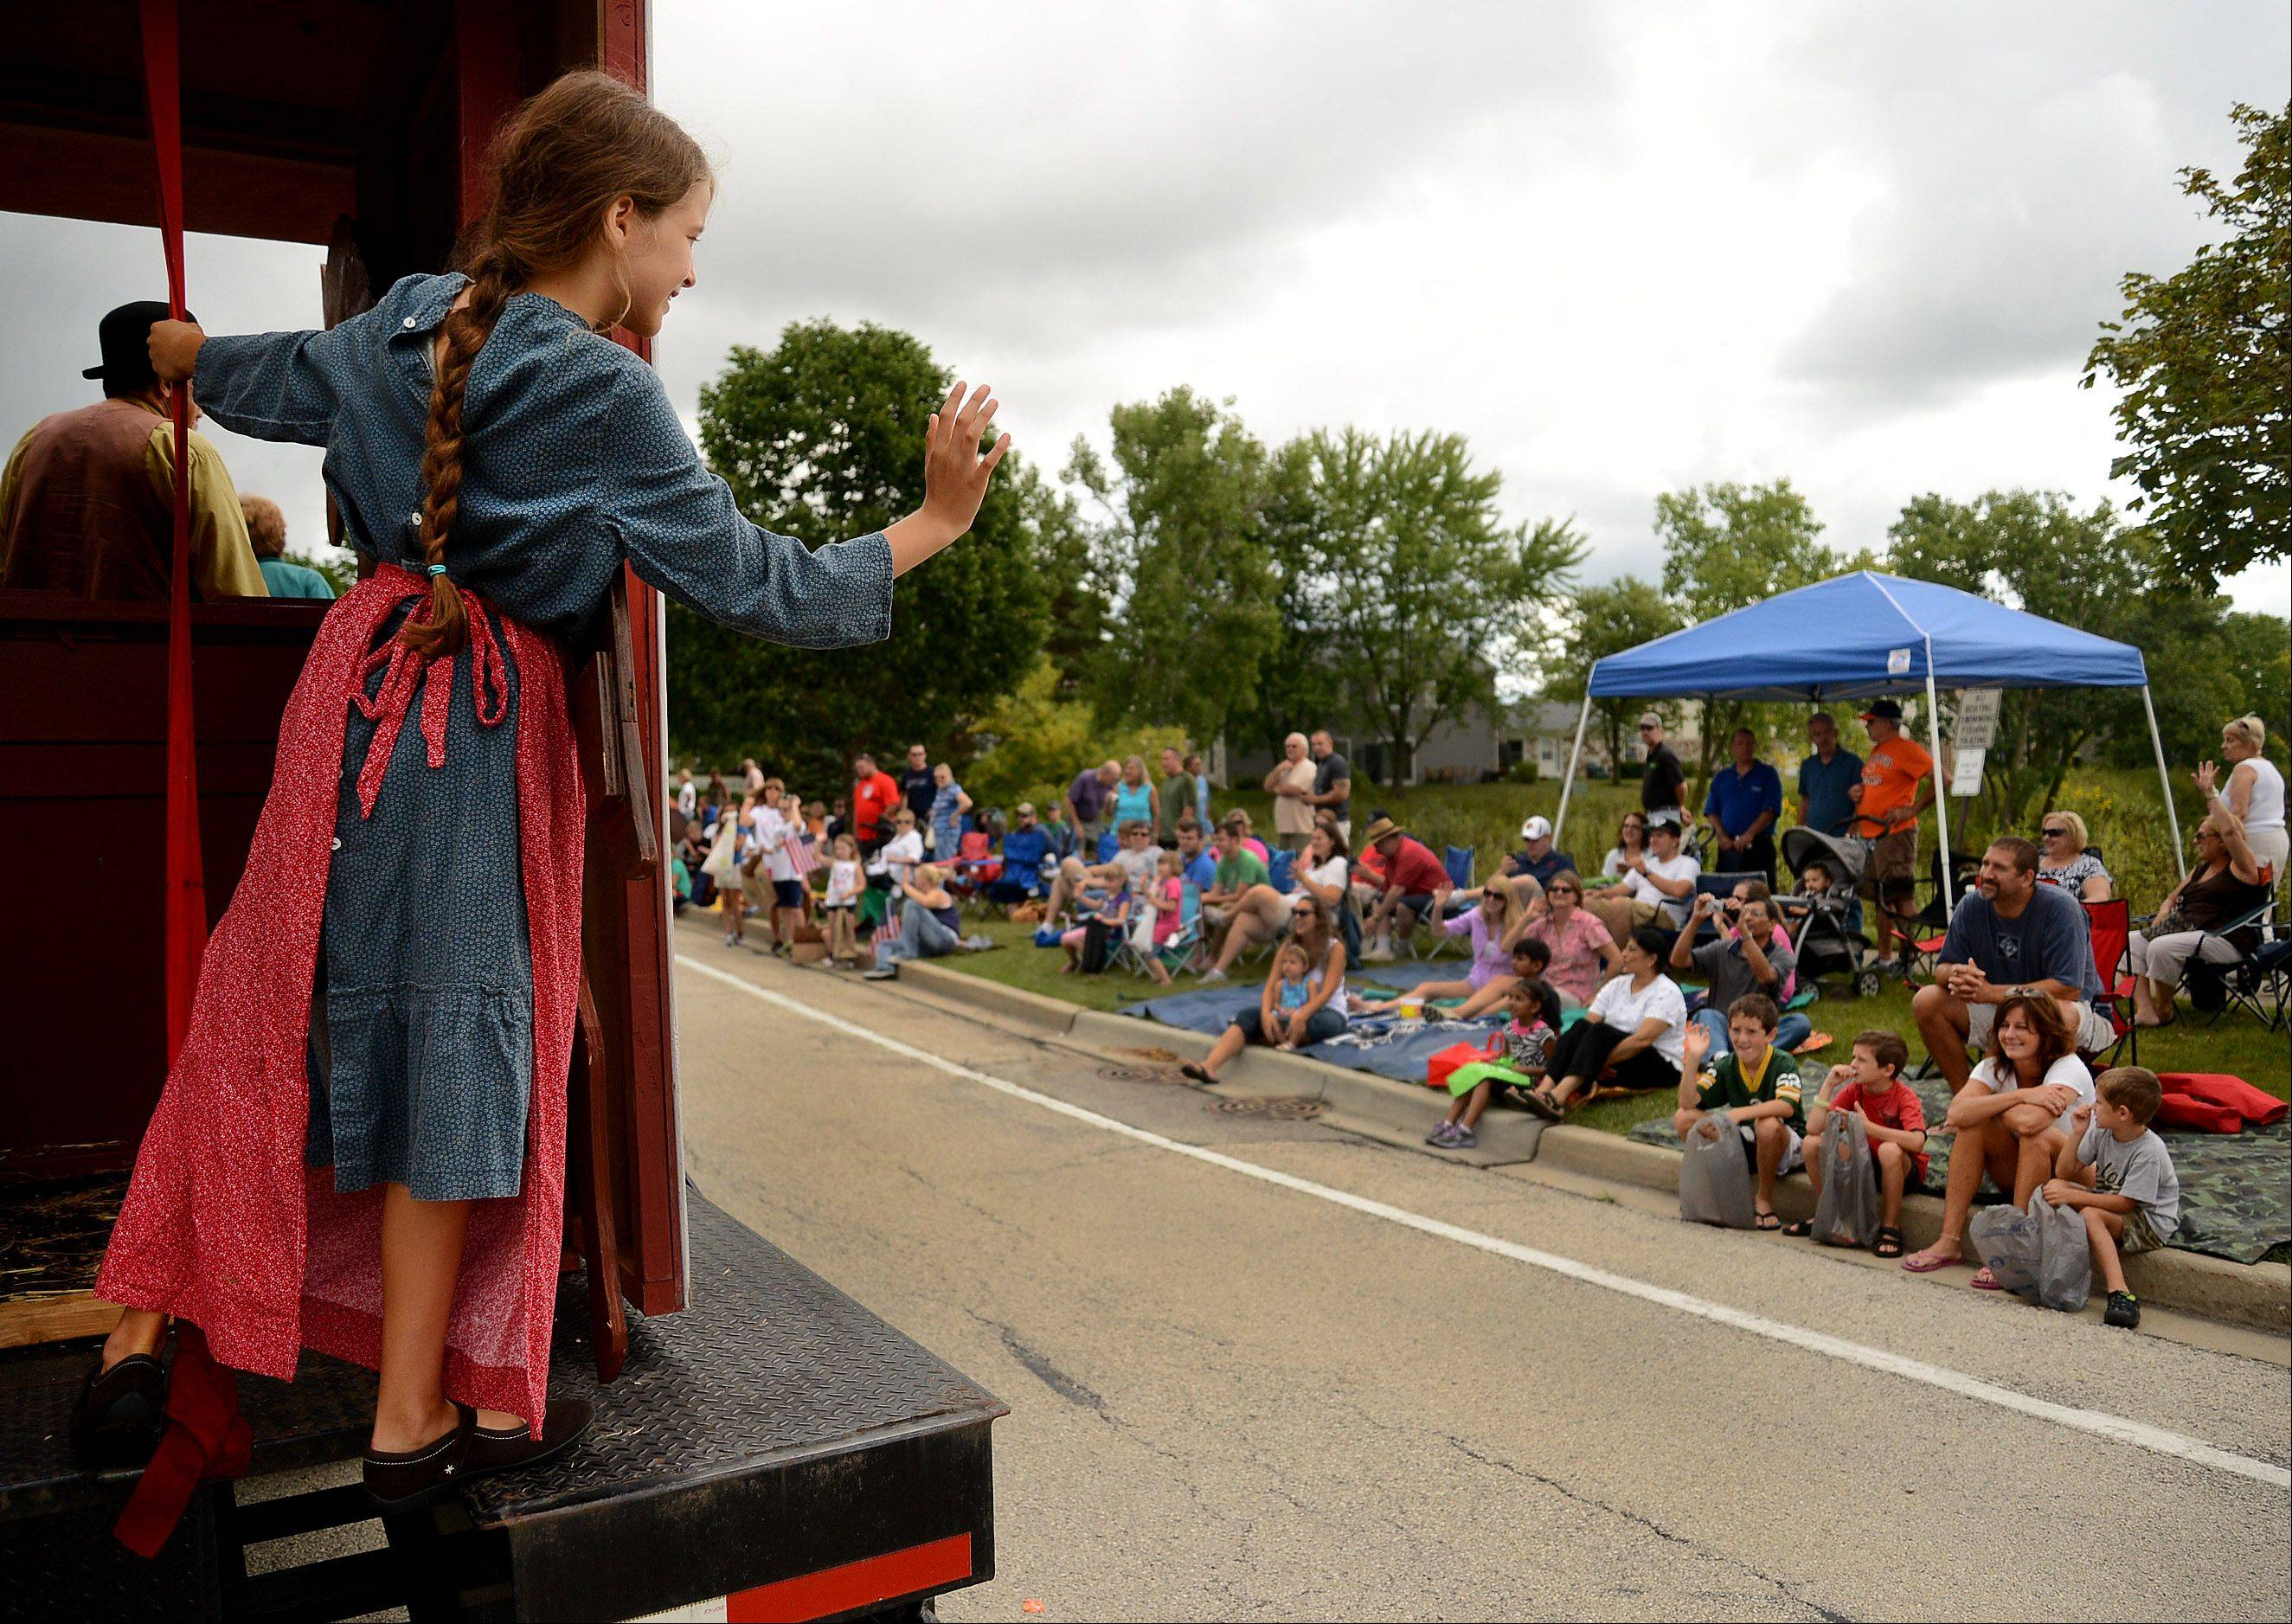 Sophia Holmes, riding the Spring Valley Nature Center float, waves to the crowd along the Septemberfest parade route in Schaumburg Monday.